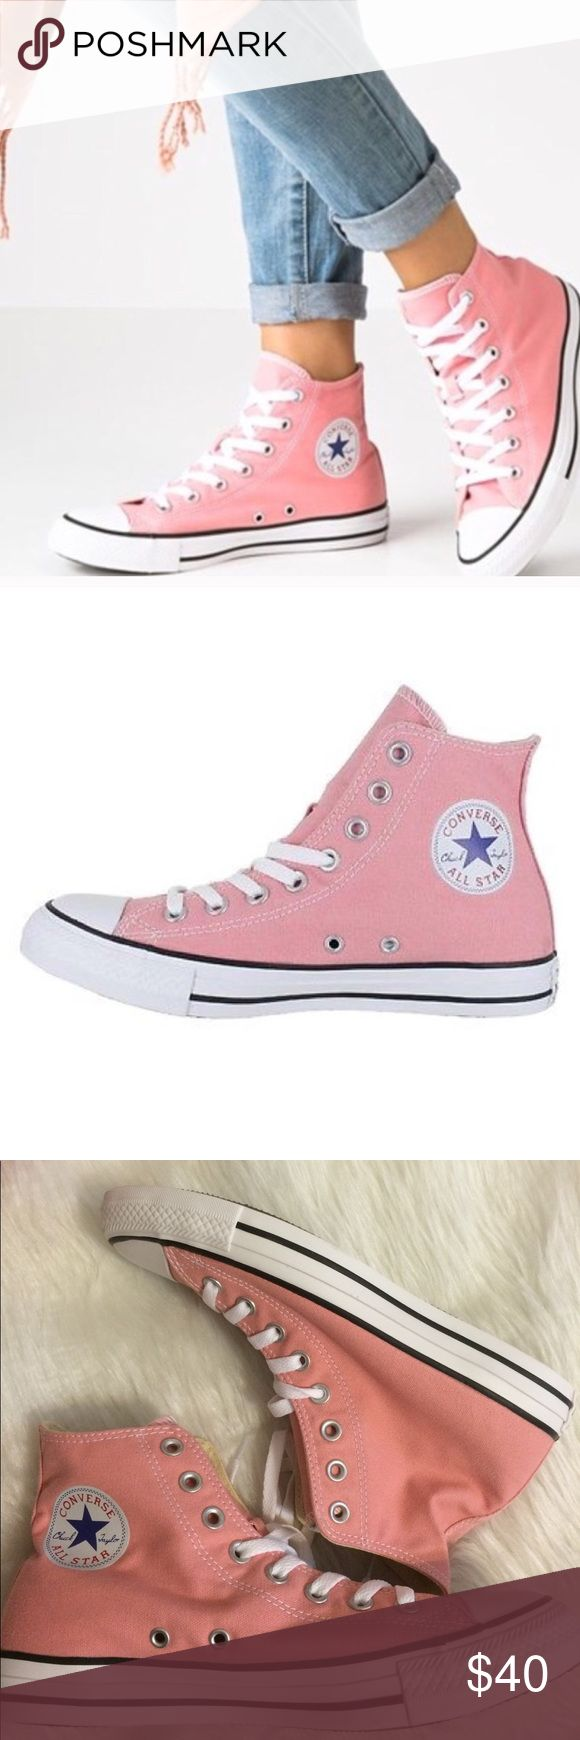 FLASH SALE Converse Women SIZE 9 SHOES PINK Brand new. Price is firm Converse Shoes Sneakers